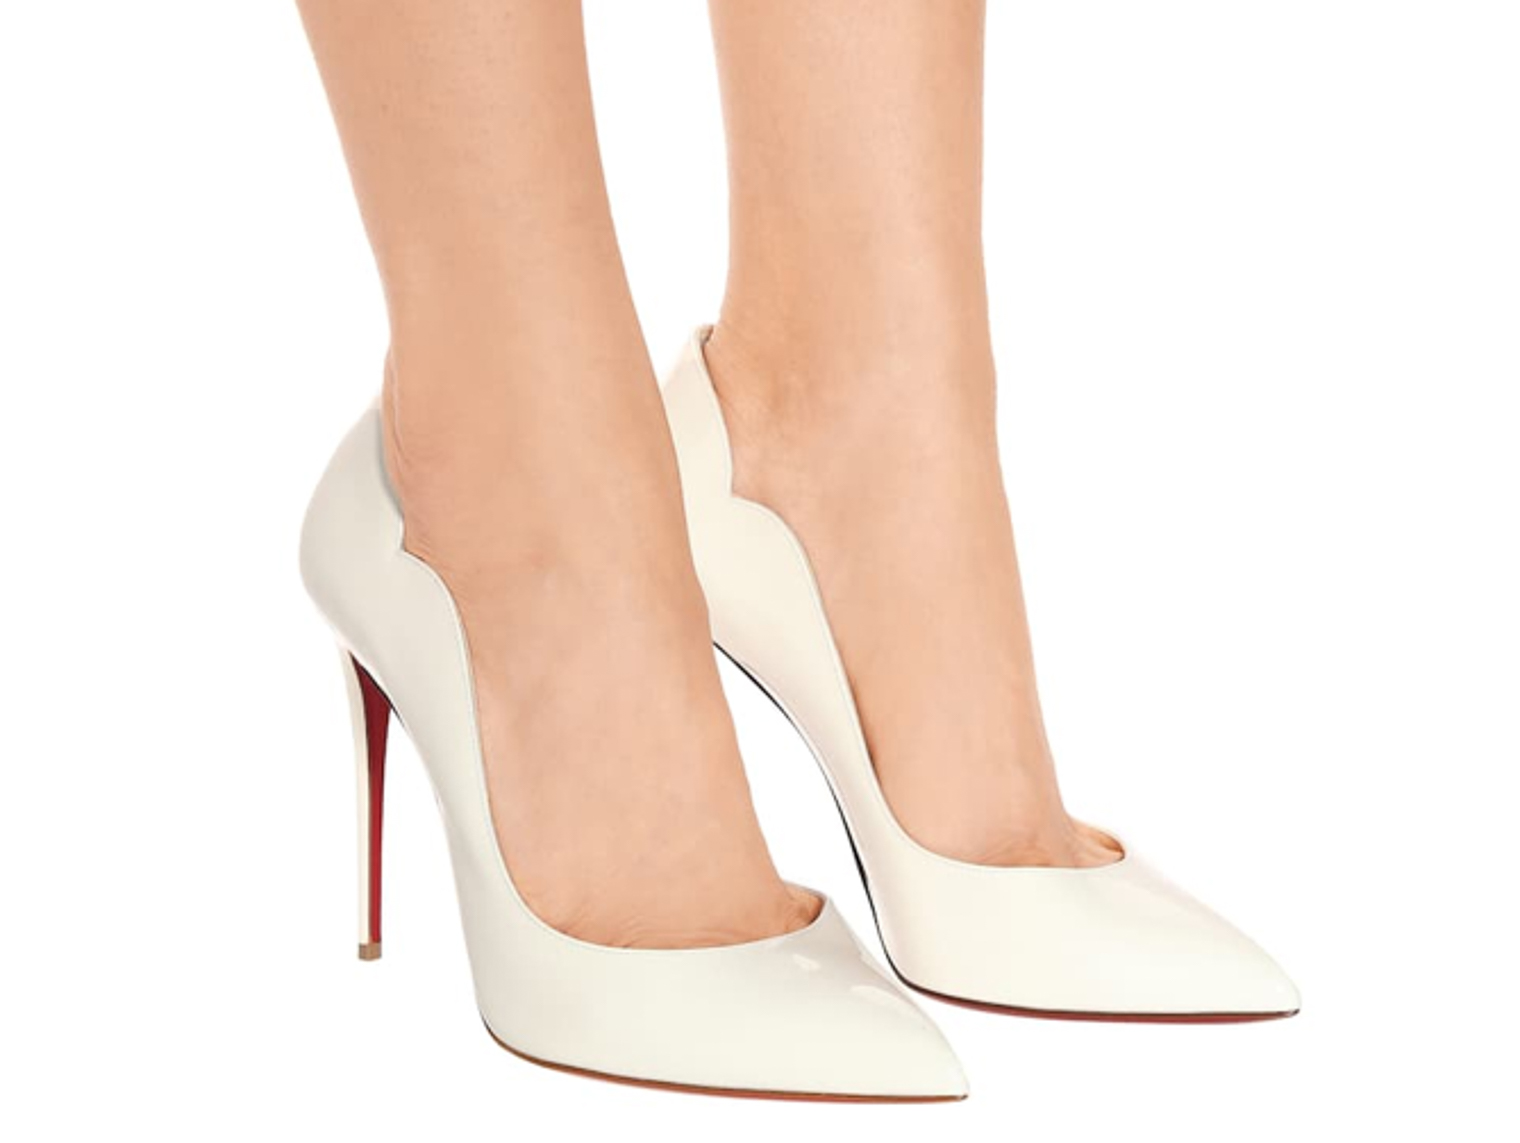 White Christian Louboutin pumps high heel